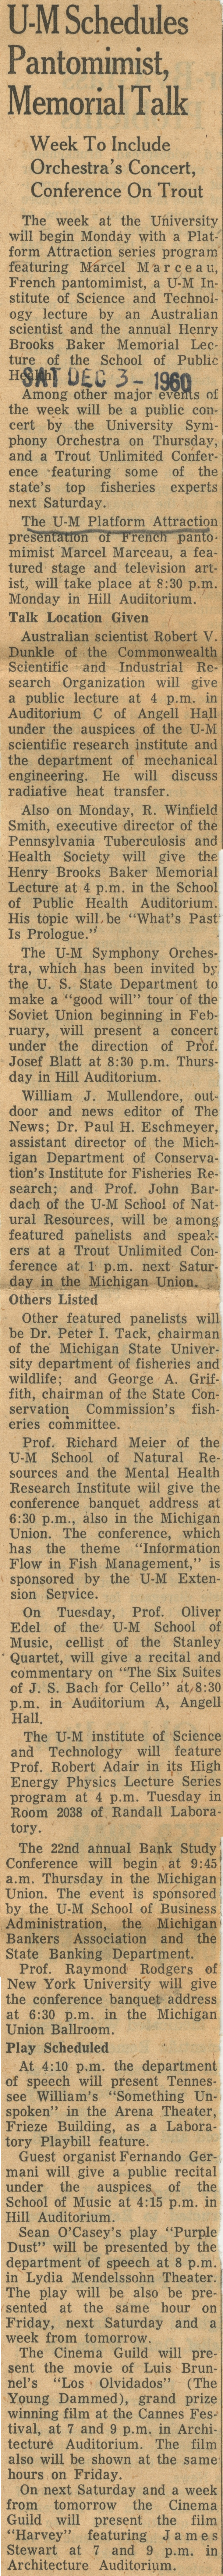 U-M Schedules Pantomimist, Memorial Talk: Week To Include Orchestra's Concert, Conference On Trout image